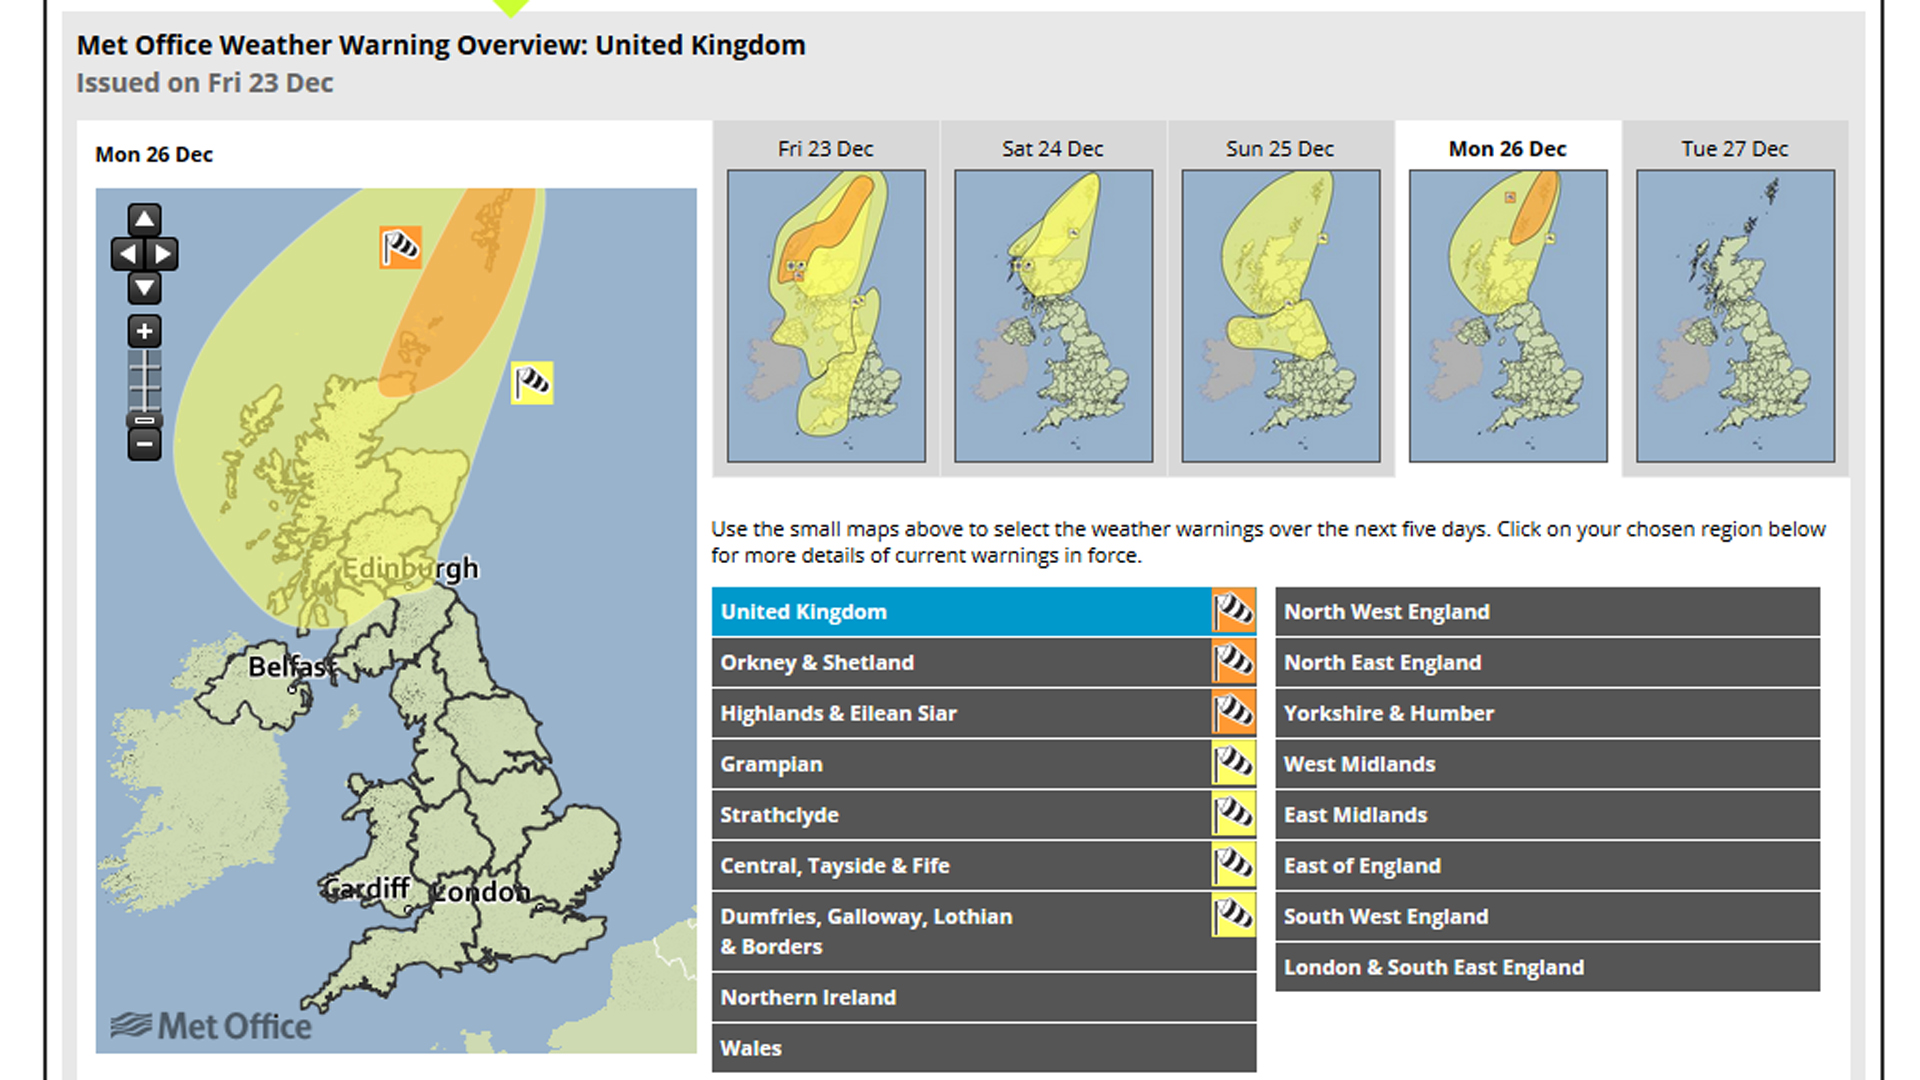 Met Office warnings